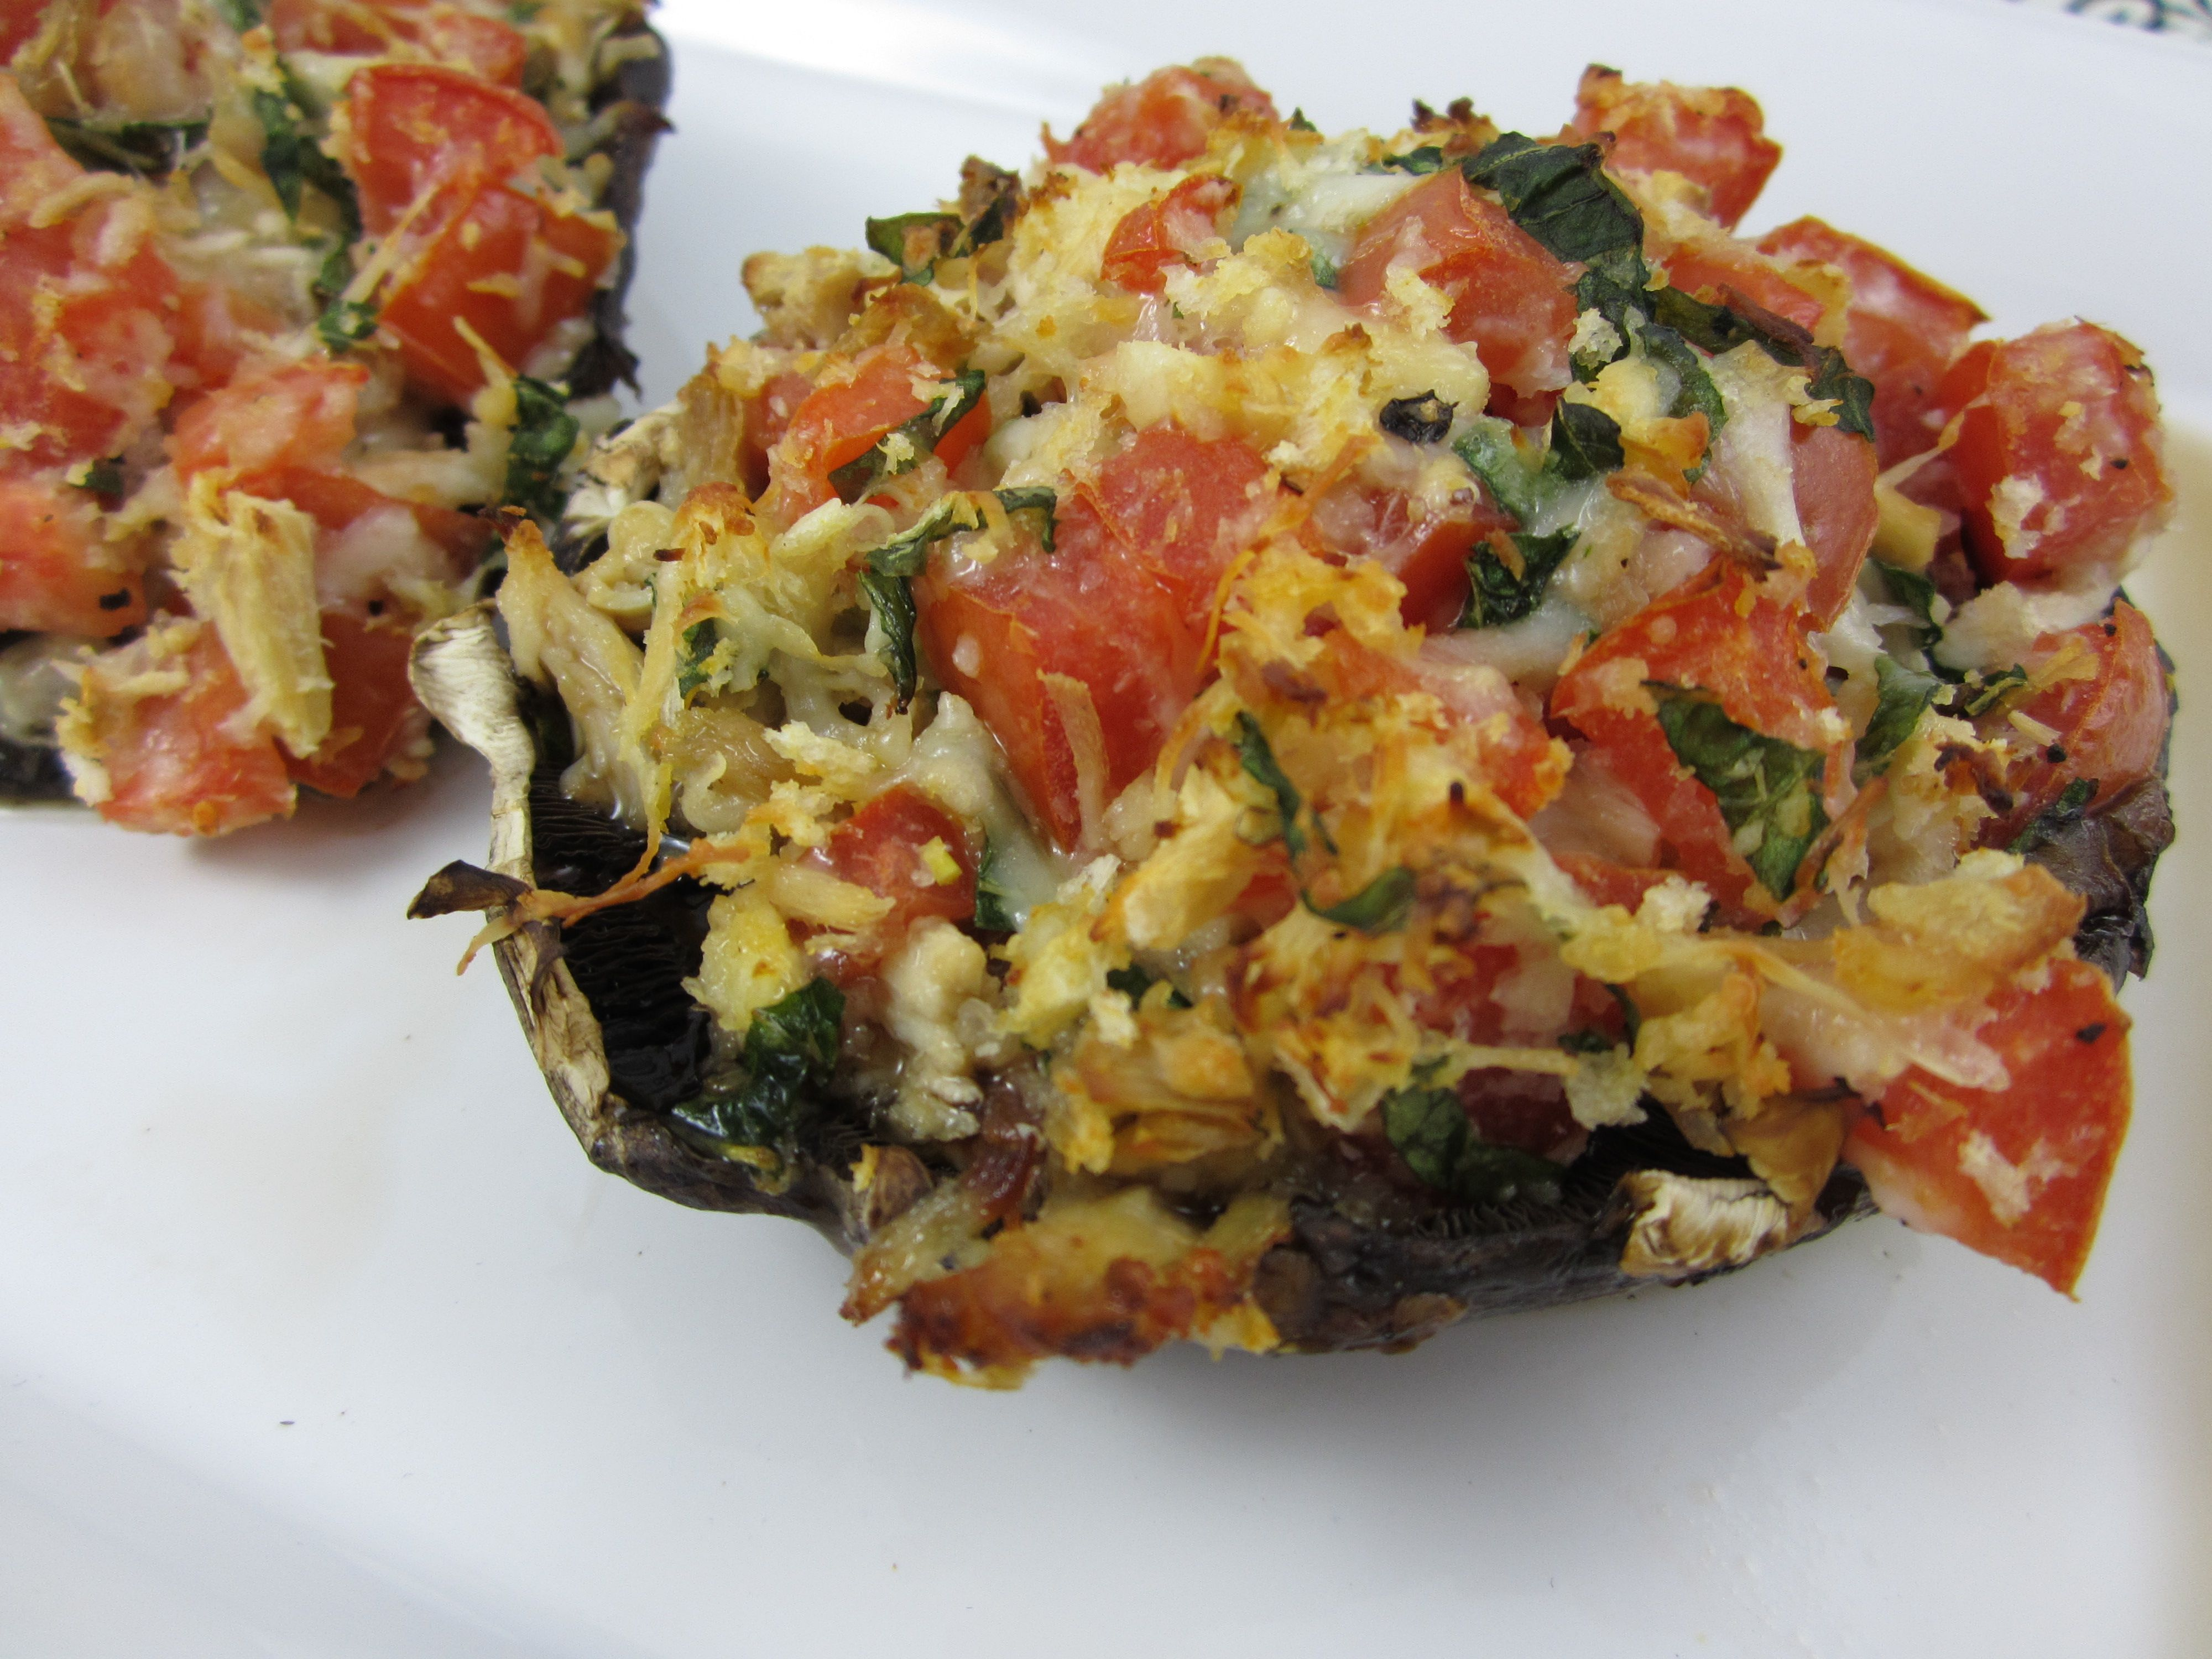 Stuffed Portobella Mushrooms..hmm may have to make these for the bestie since he loves mushrooms!